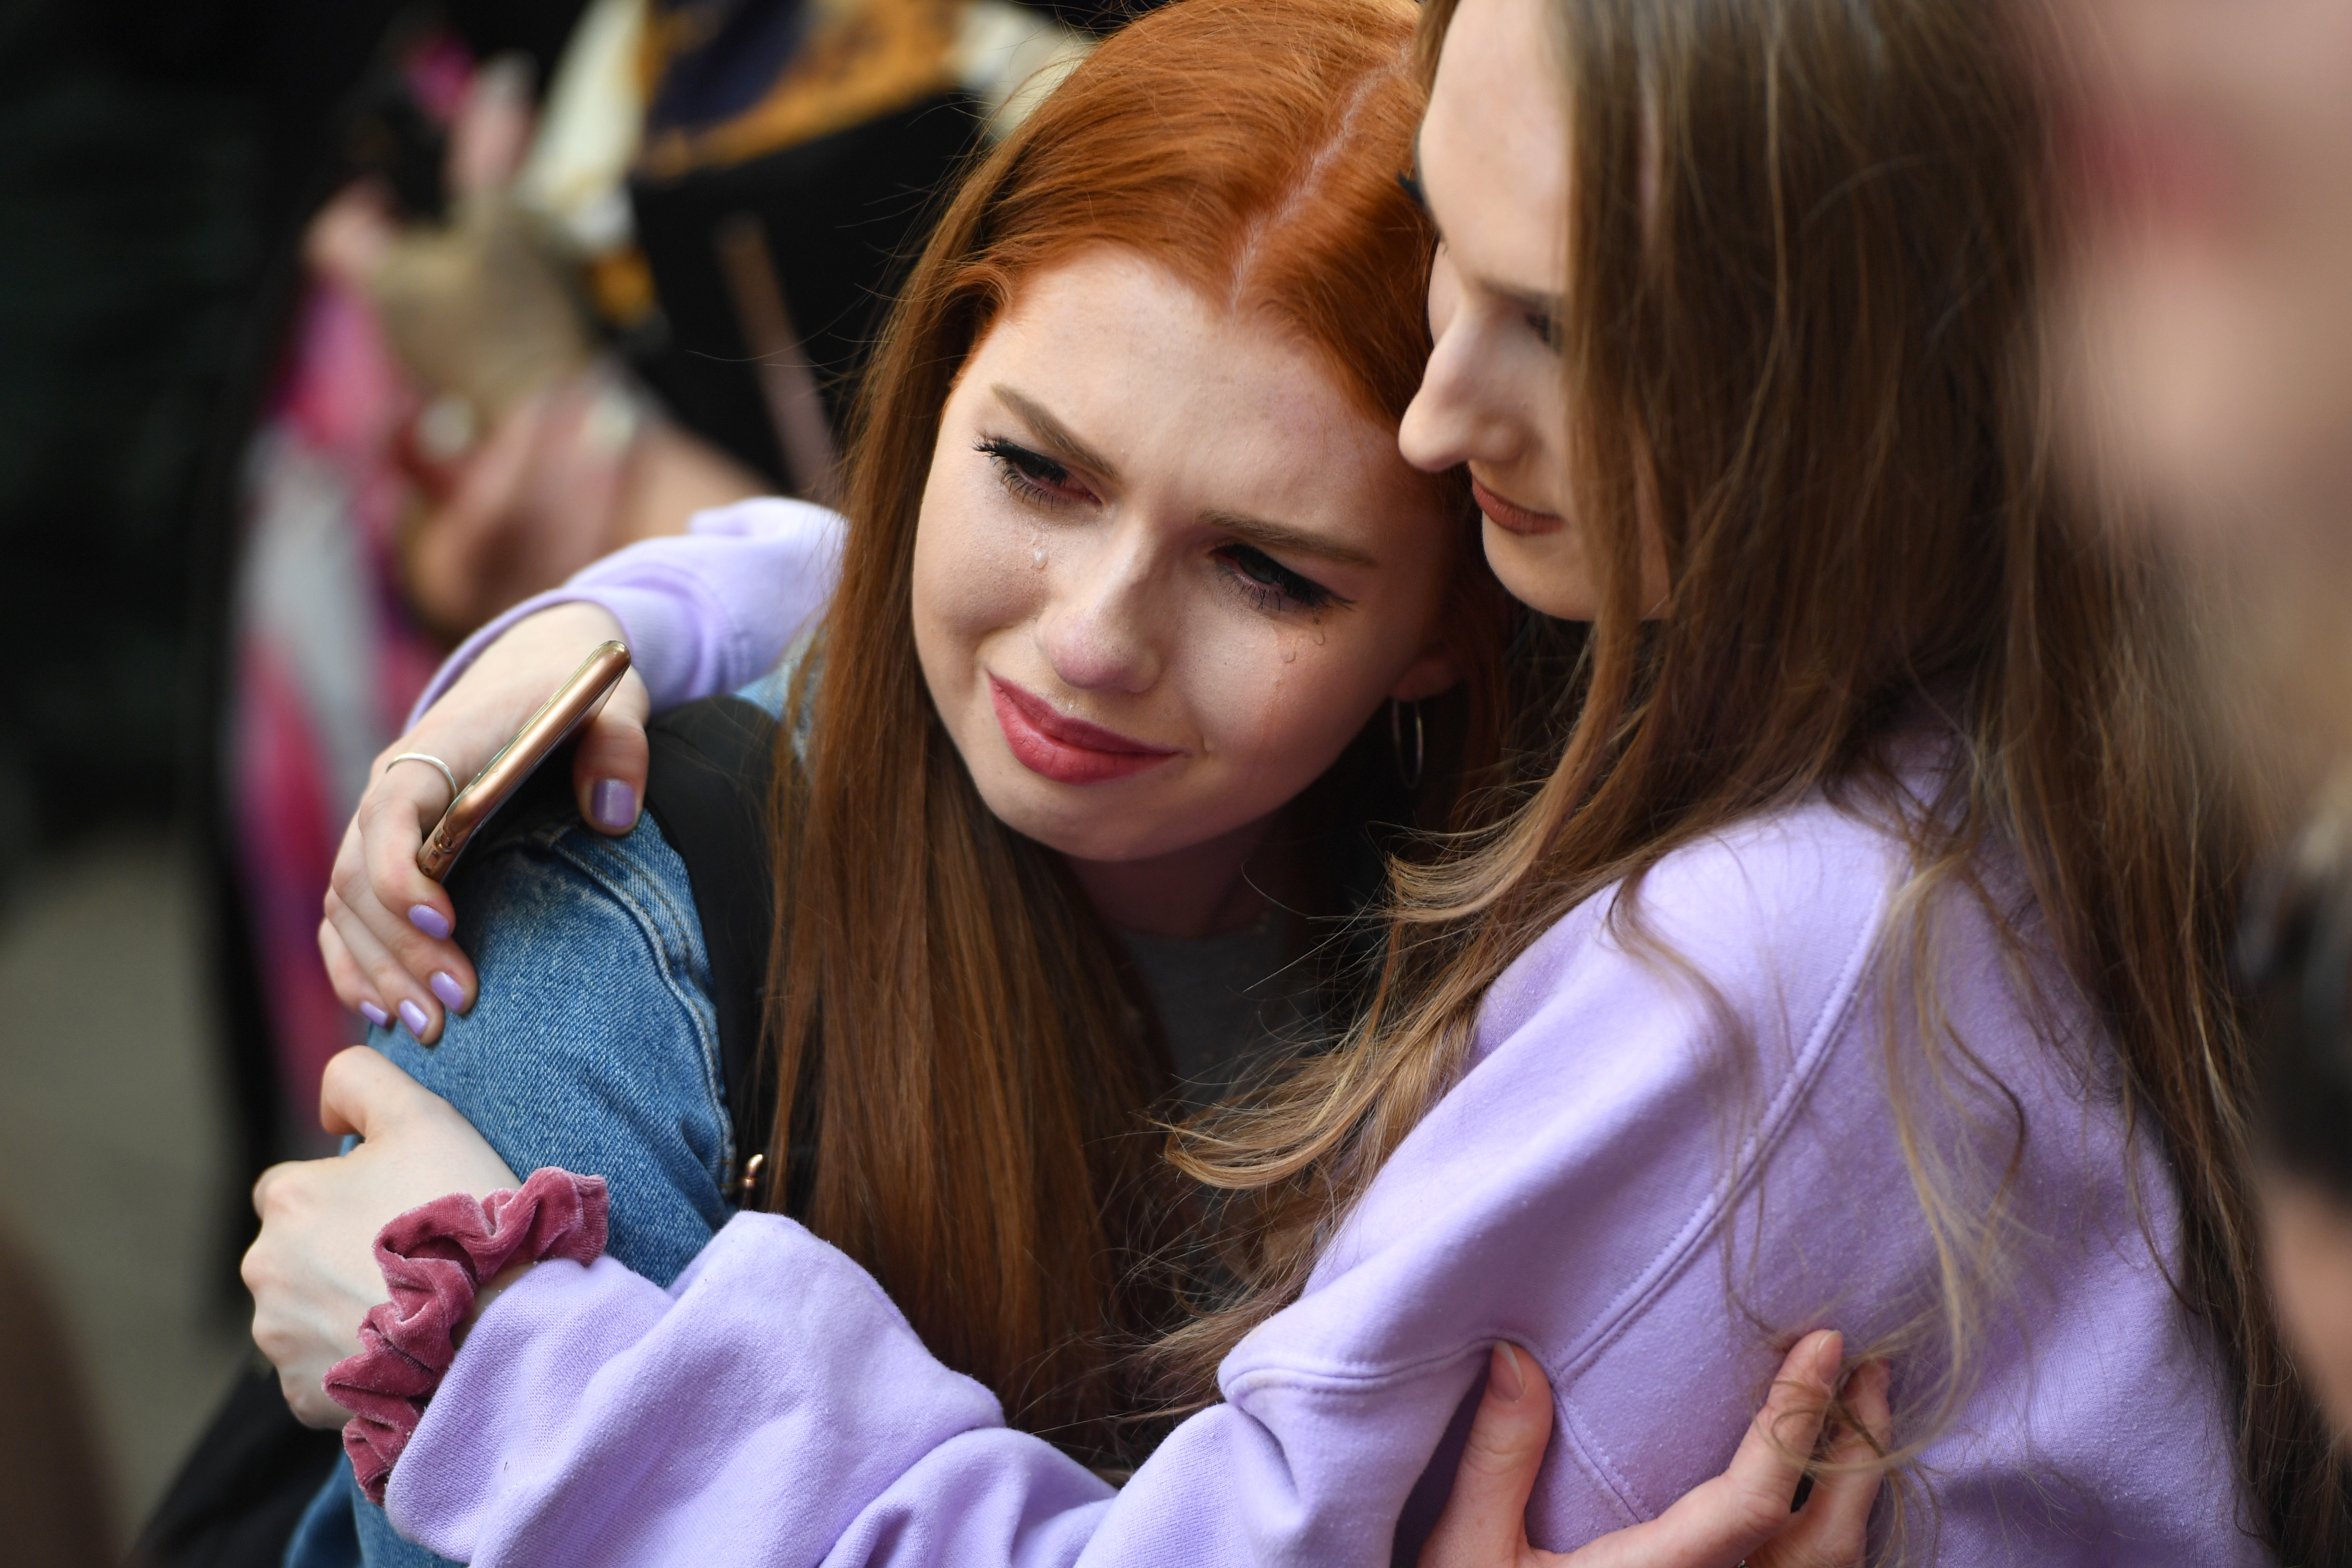 MANCHESTER, ENGLAND - MAY 22: Members of the public reacts as the Manchester Survivors Choir perform following a two minute silence in memory of the victims of the Manchester Bombing in Saint Anne's Square on May 22, 2019 in Manchester, England. The suicide bomb attack took place following a concert at Manchester Arena by US singer Ariana Grande and claimed the lives of 22 people. (Photo by Anthony Devlin/Getty Images)